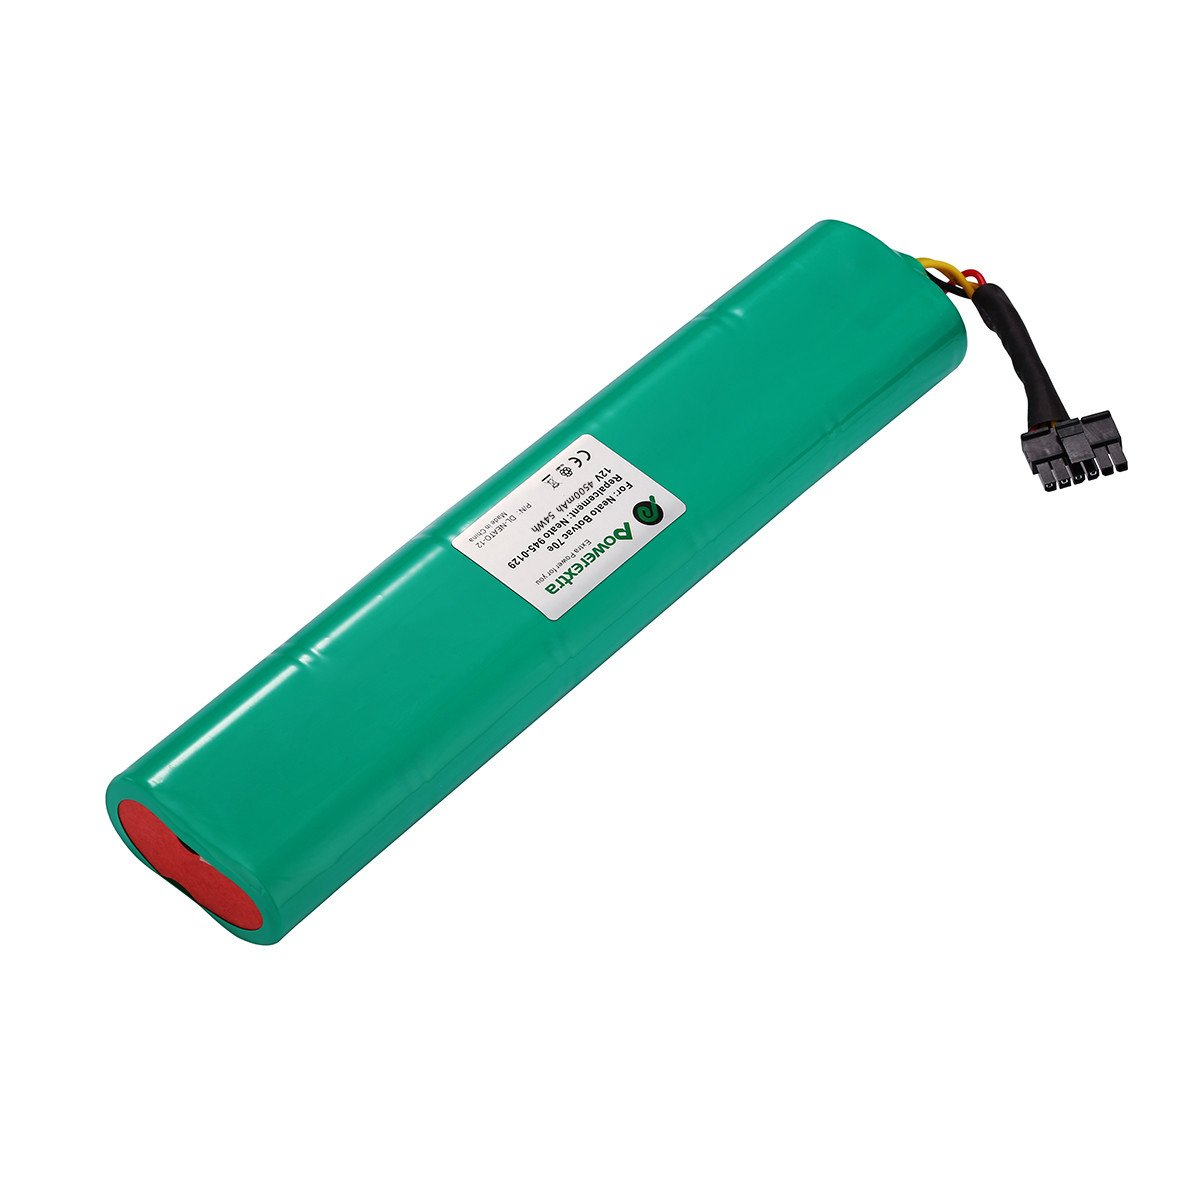 Powerextra 12V 4.5Ah Ni-MH Battery Pack for Neato Botvac Series 70e, 75, 80, 85 and Botvac D Series D75 D80 D85 Robot Vacuum Cleaner 945-0129